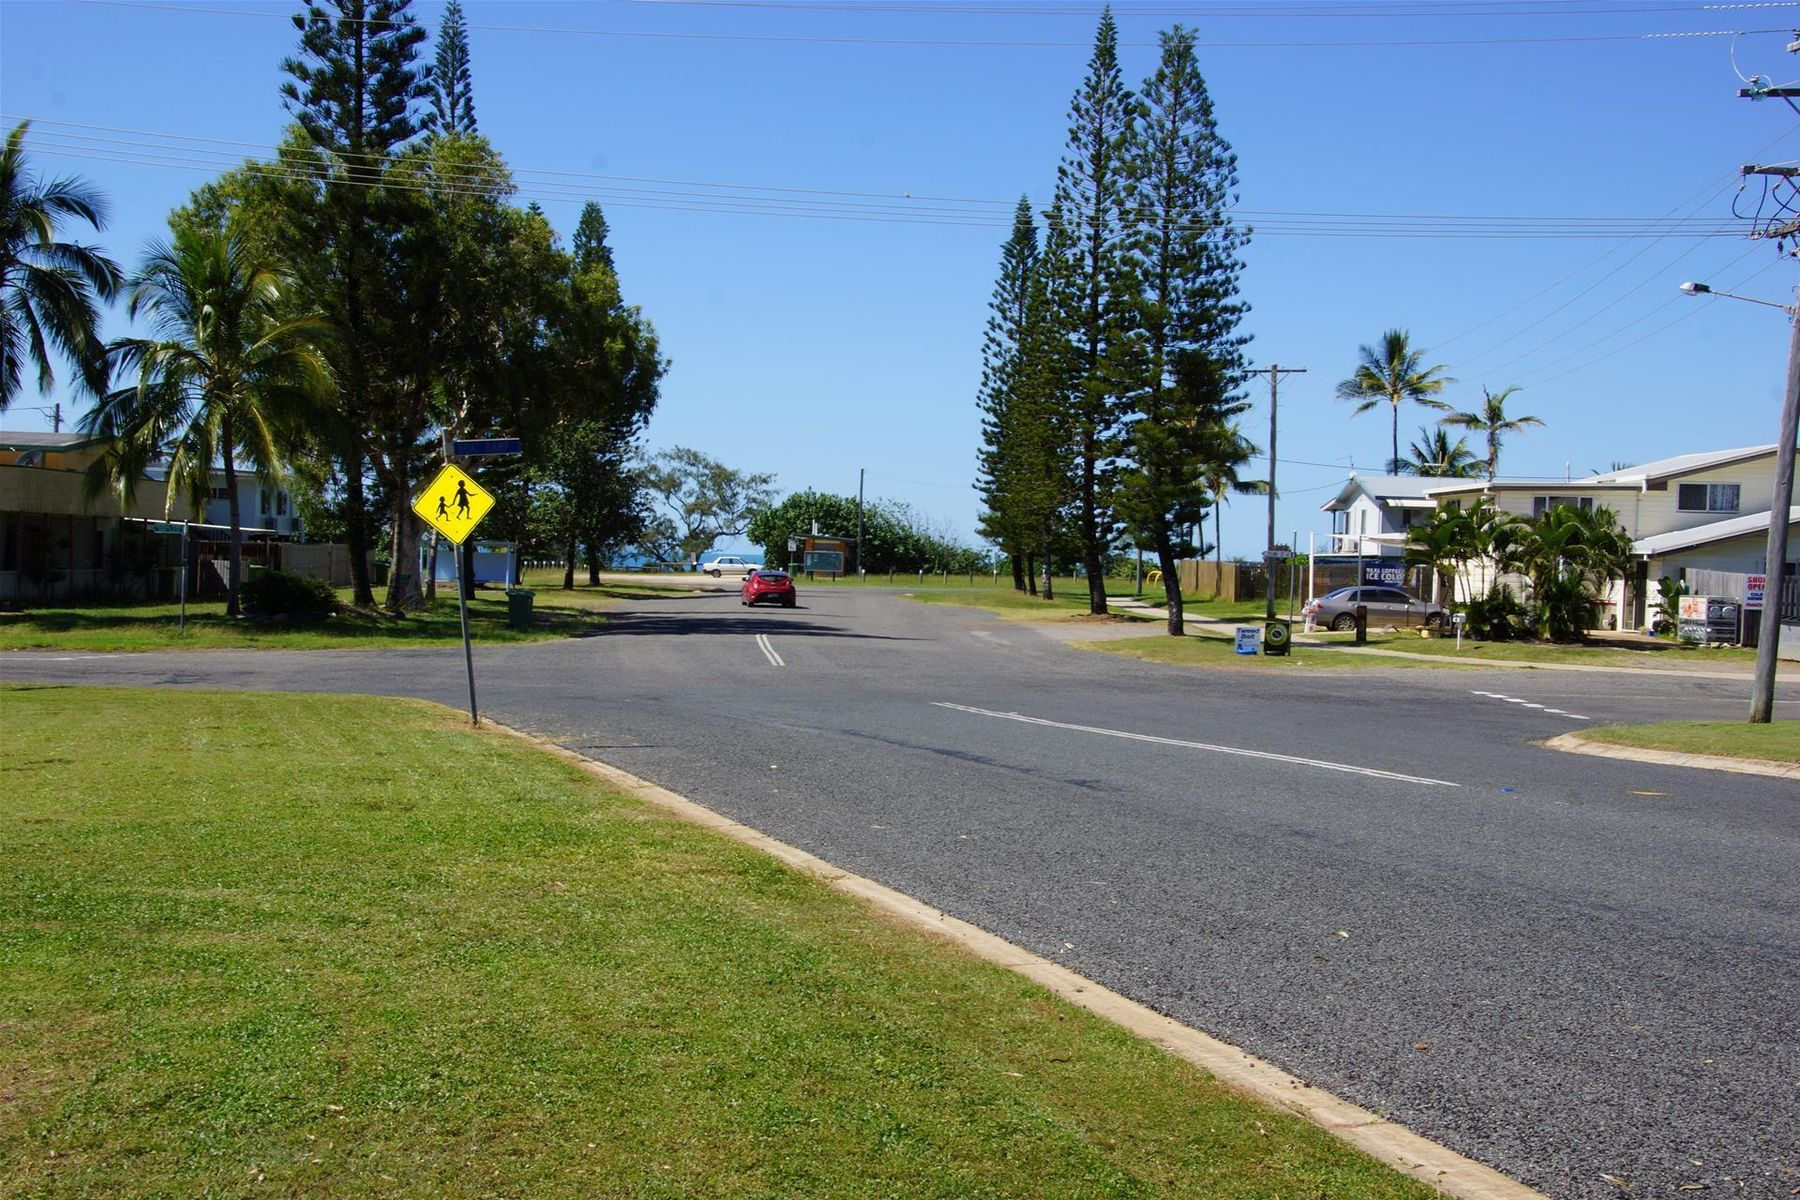 Lot 815/453 Grasstree Beach Road, Grasstree Beach, QLD 4740